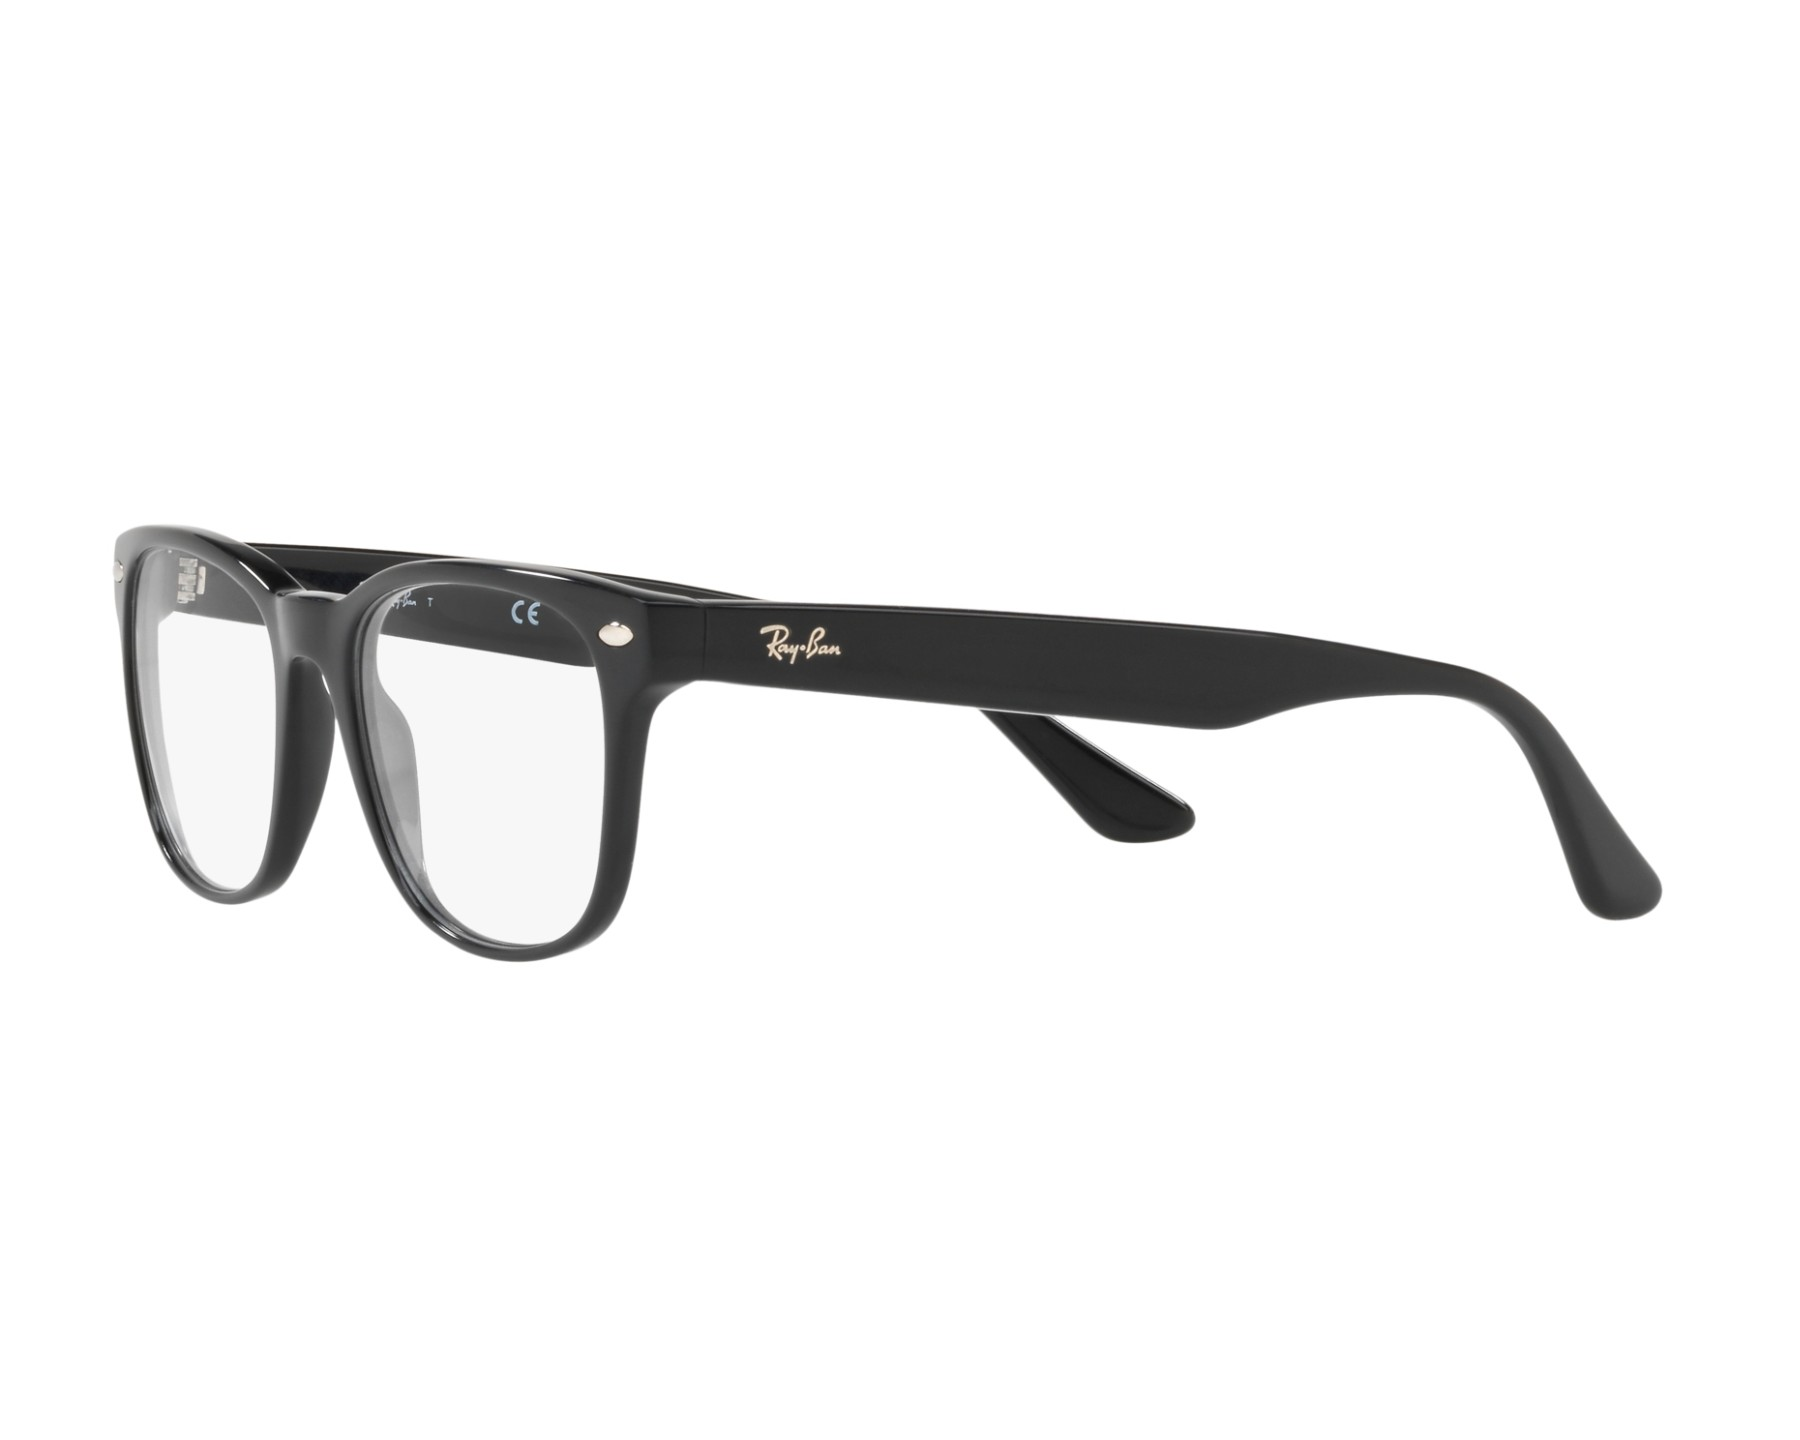 6a222a89b8 eyeglasses Ray-Ban RX-5359 2000 53-19 Black 360 degree view 3